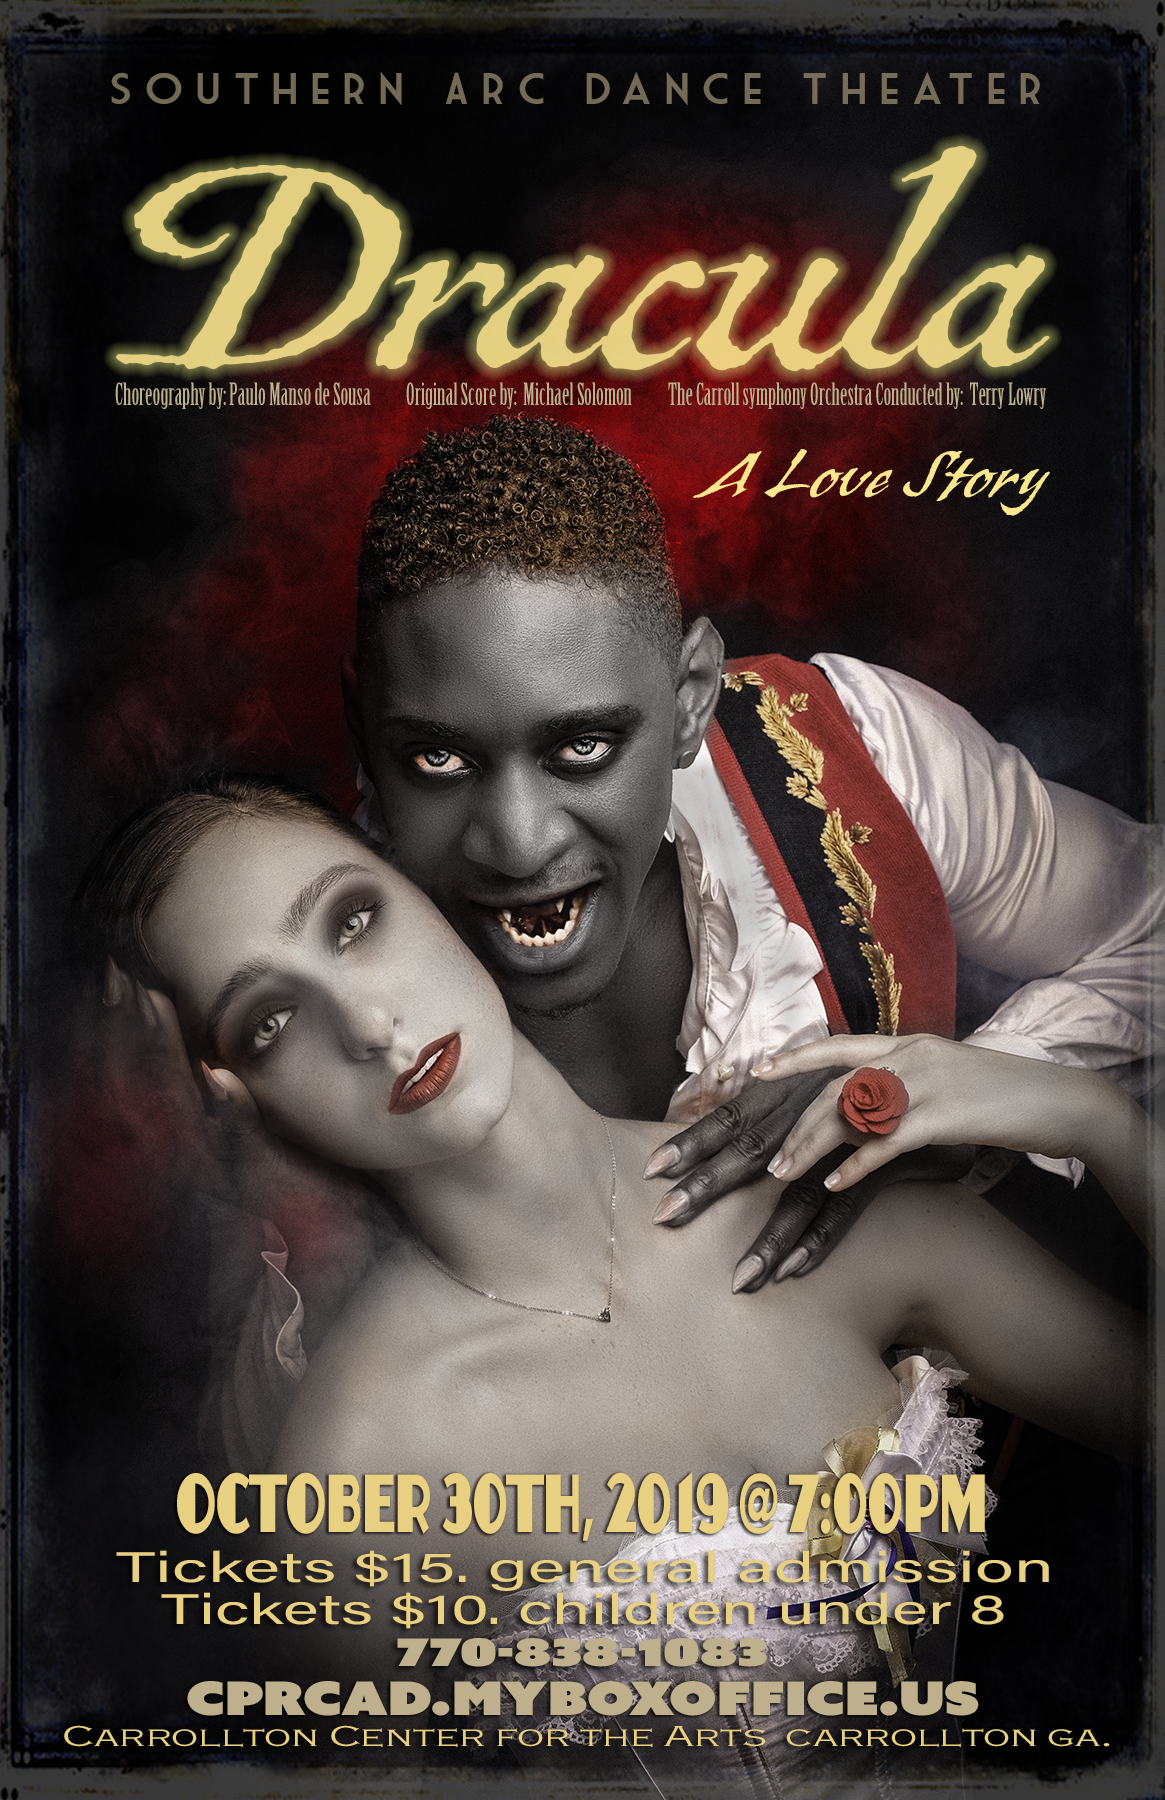 Dracula: Southern Arc Dance Theater and CSO